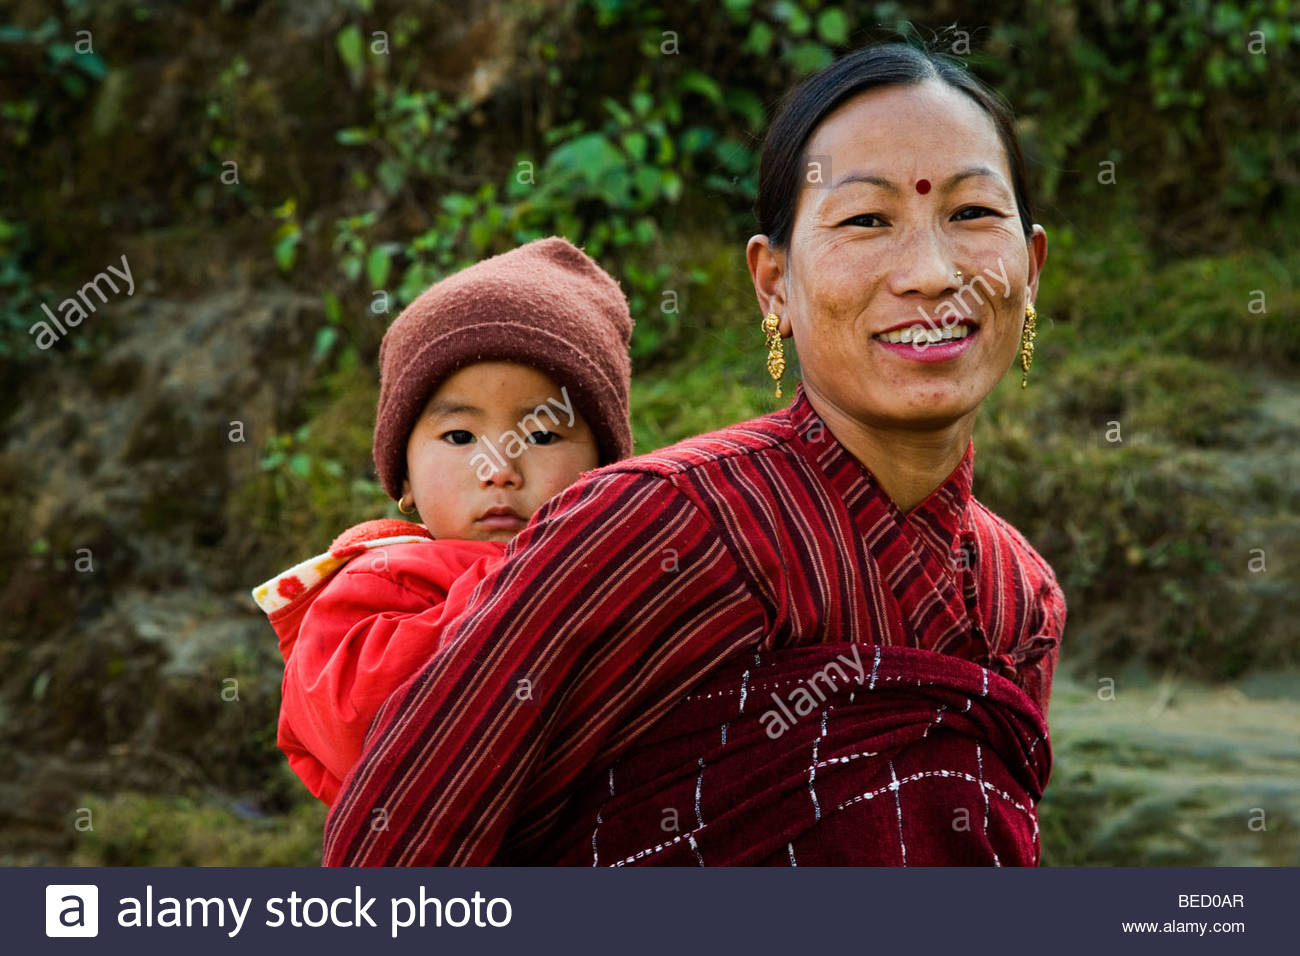 Nepalese Woman and Child - Stock Image